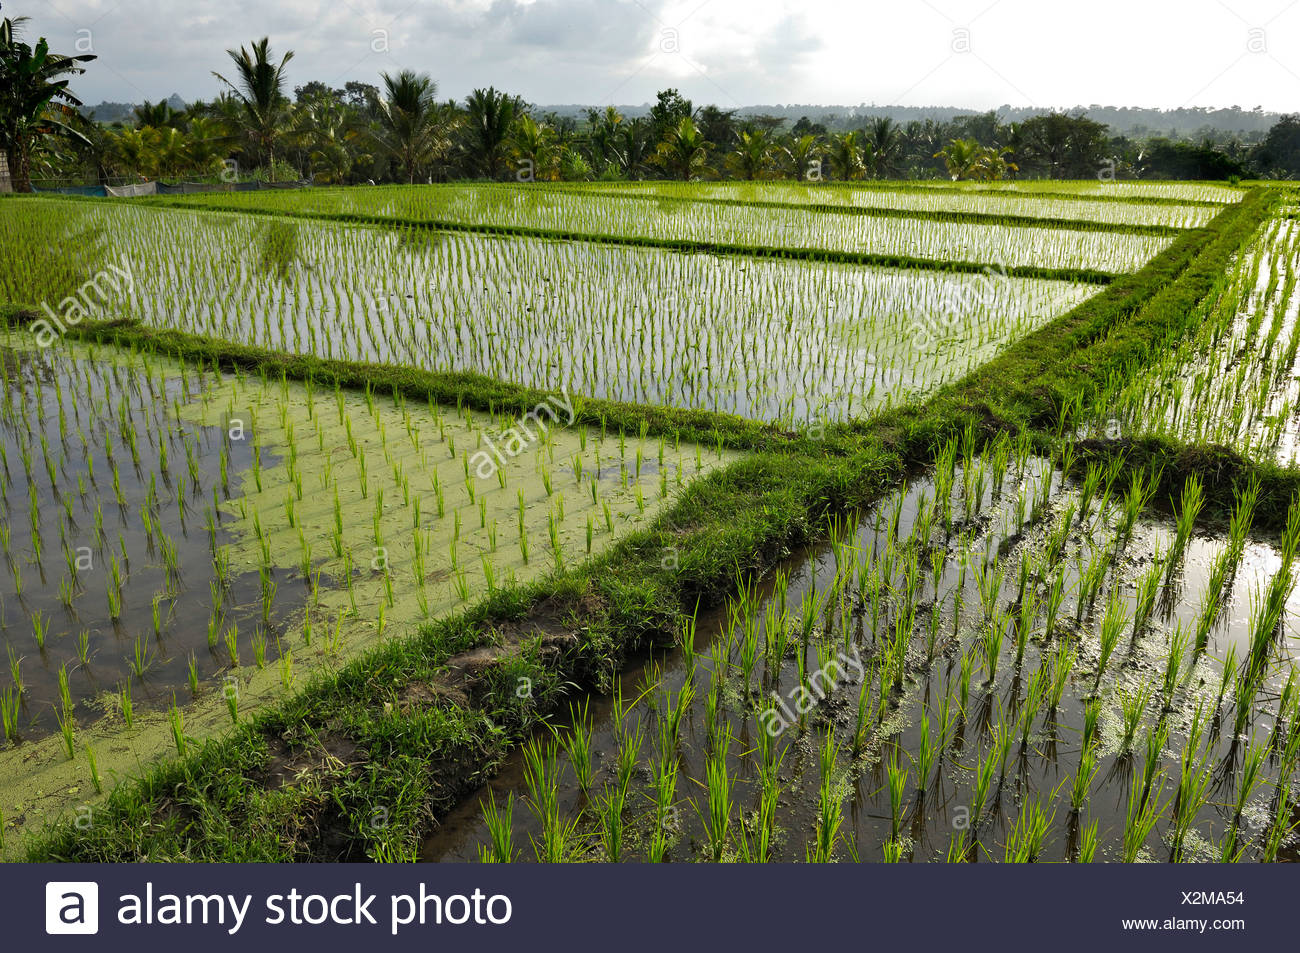 Rice paddies near Mengwi, Bali, Indonesia, South East Asia - Stock Image